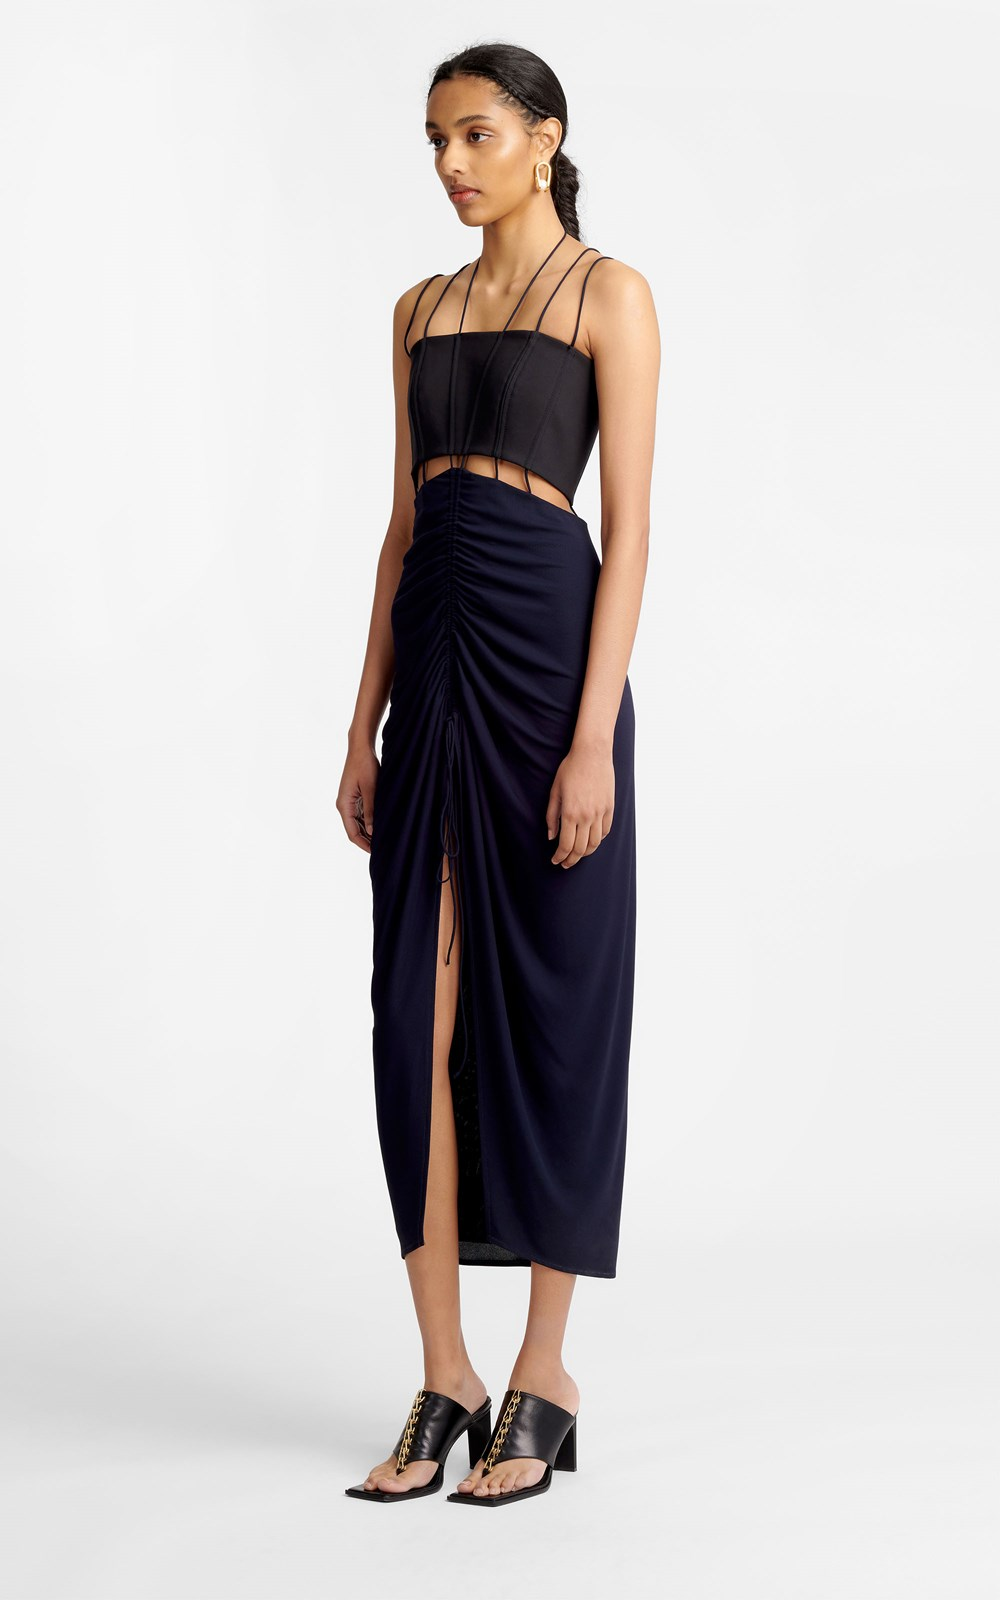 Dresses | ROULEAU SUSPEND DRESS